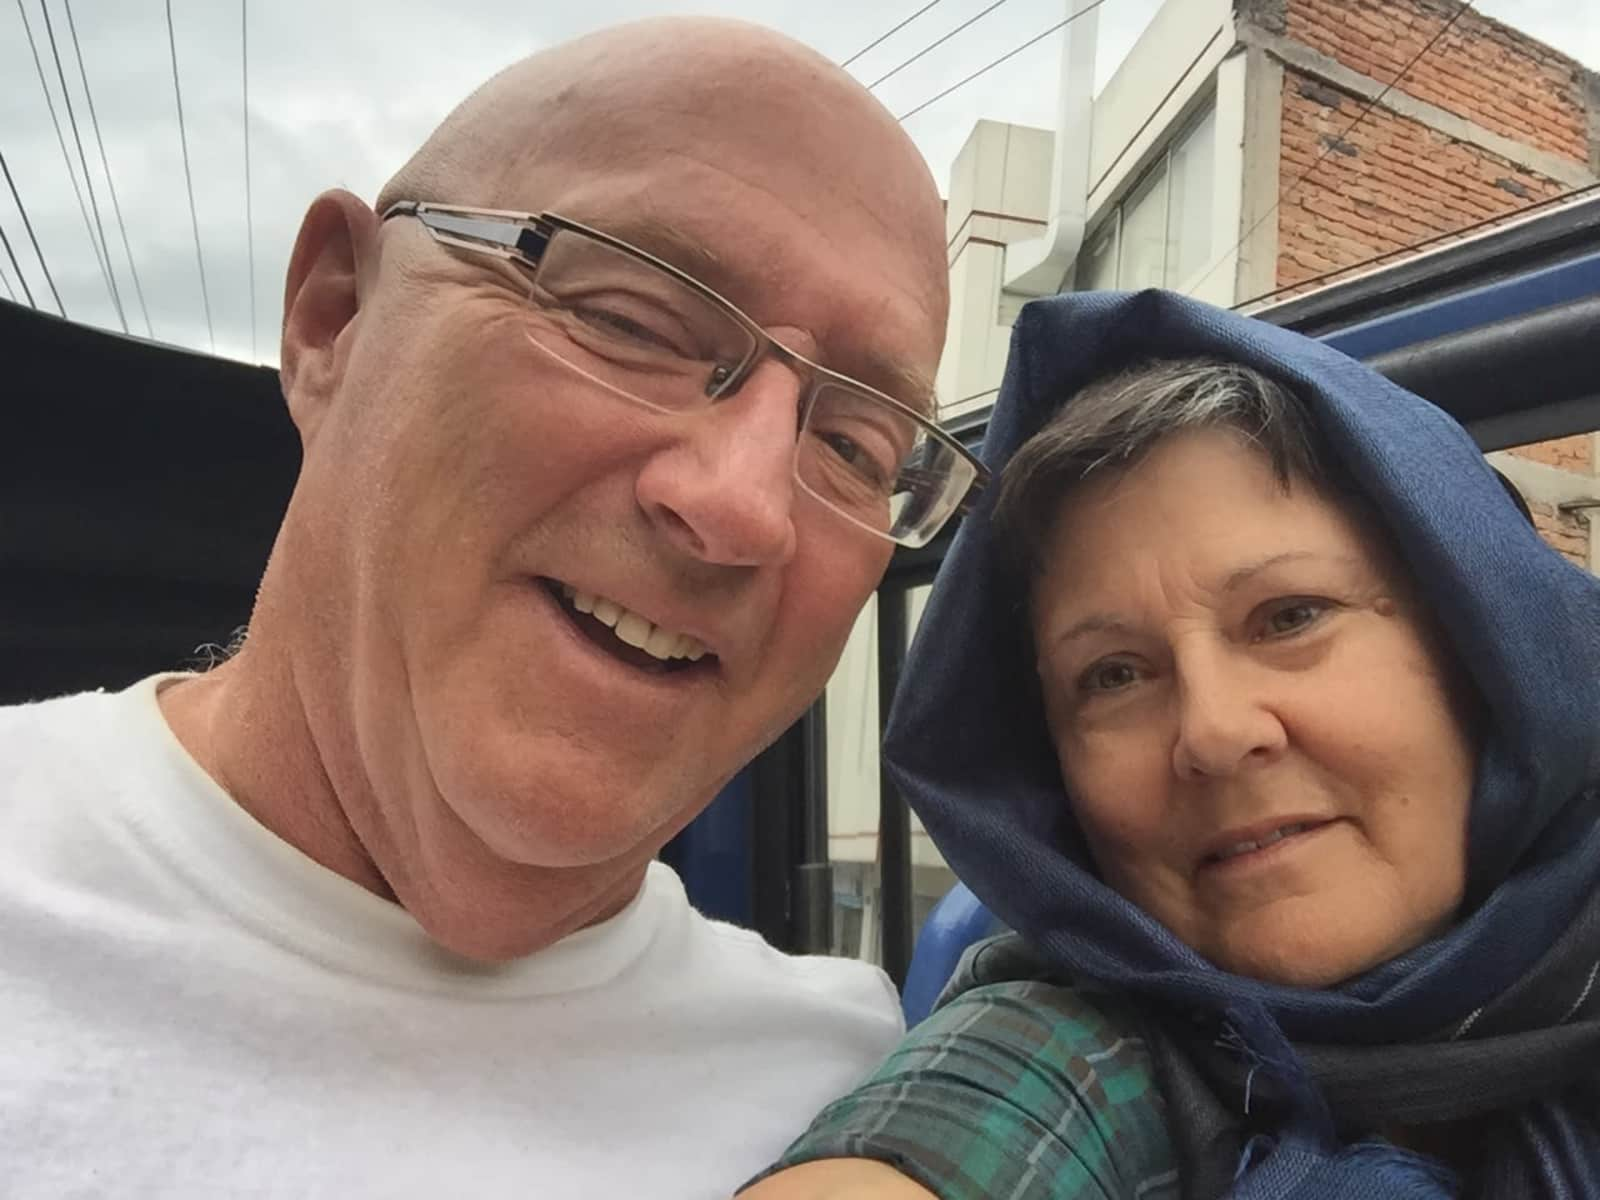 Nancy & Lorne from Beausejour, Manitoba, Canada